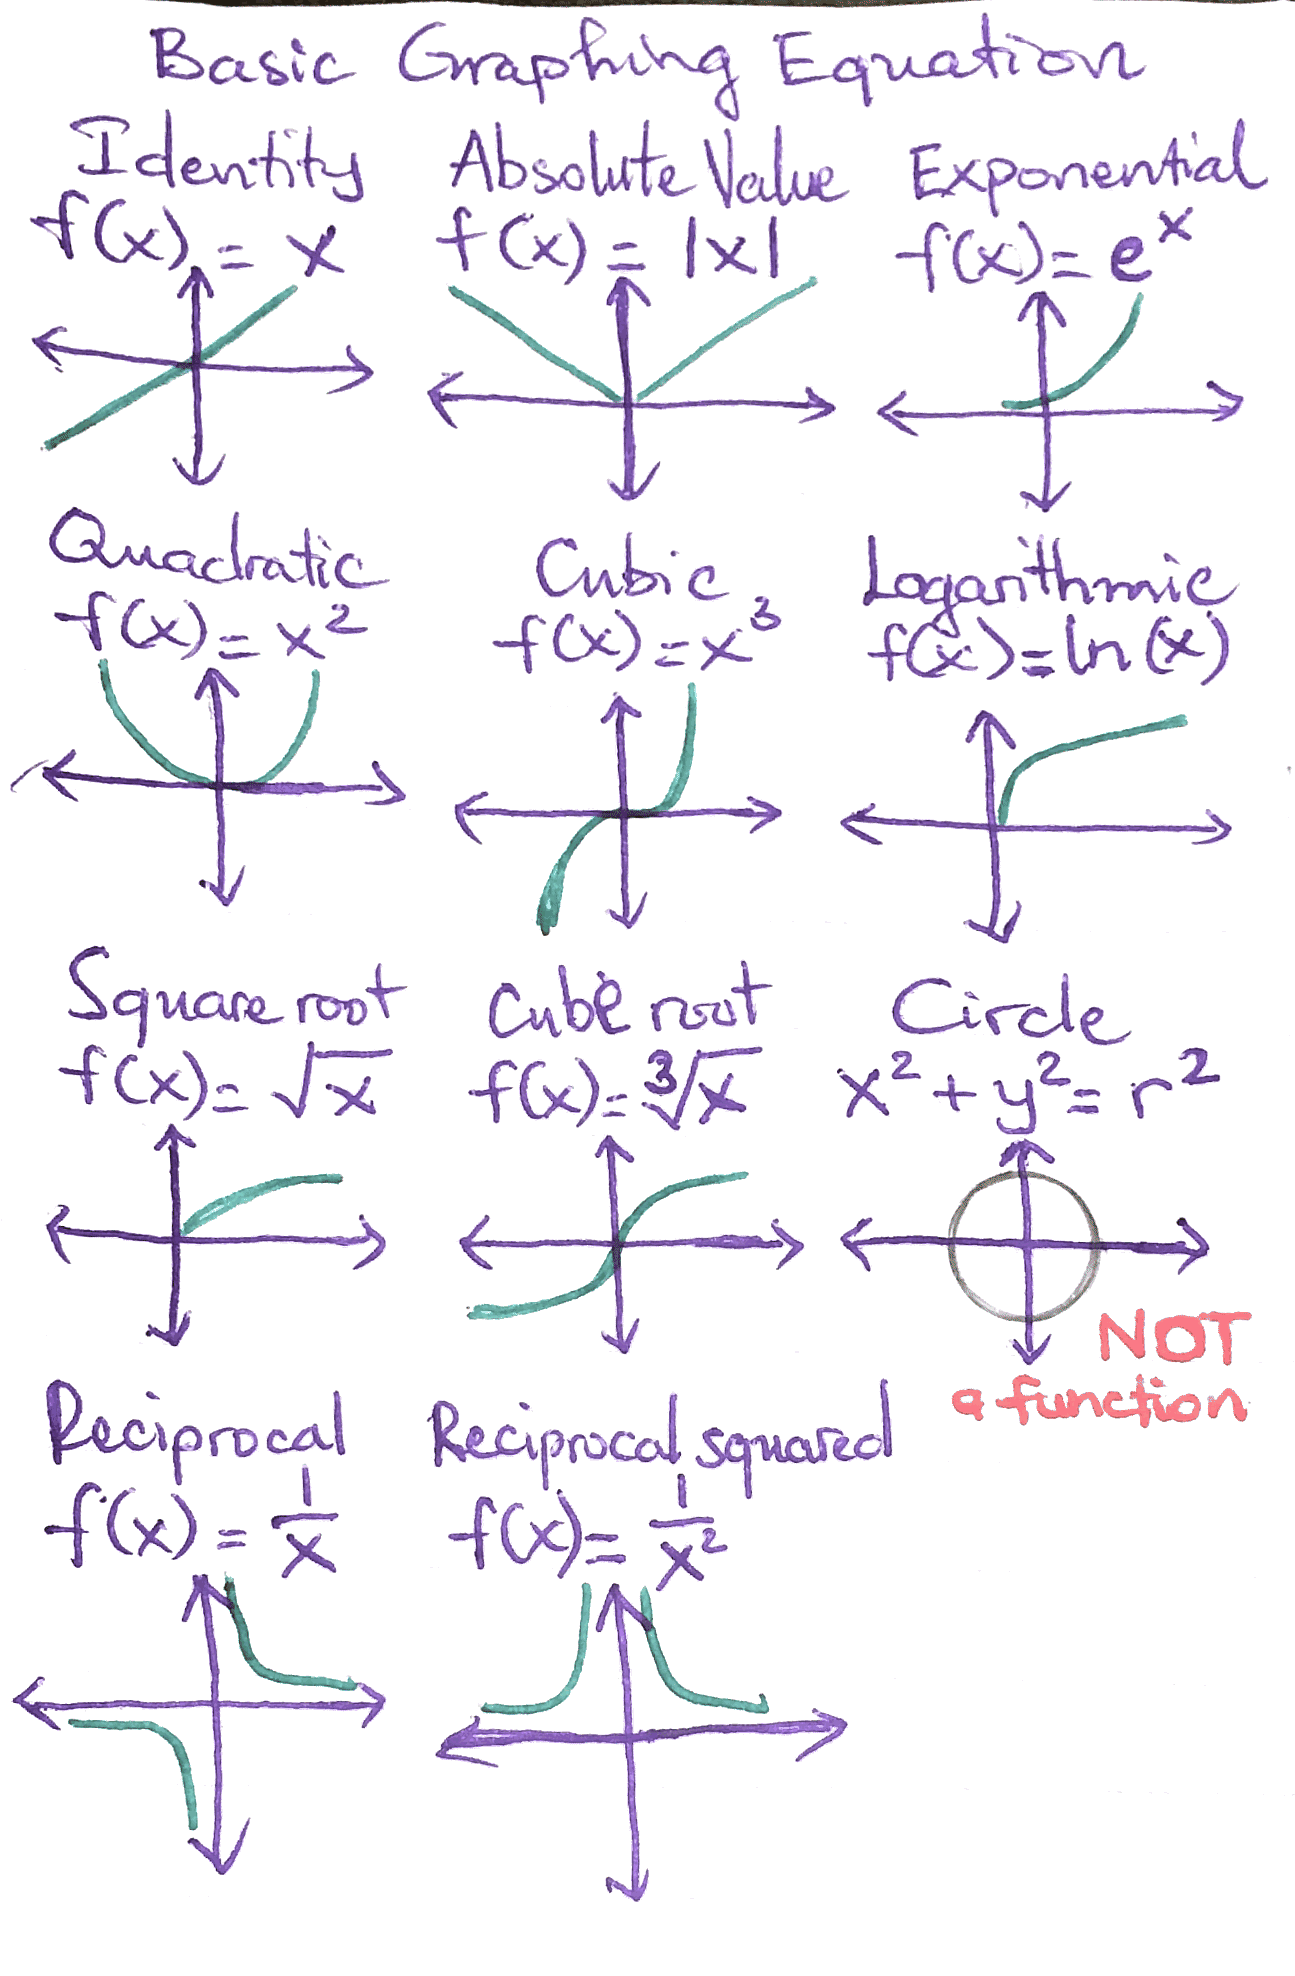 small resolution of Basic Graphing Equations for Math 141 of GRC.   Basic math